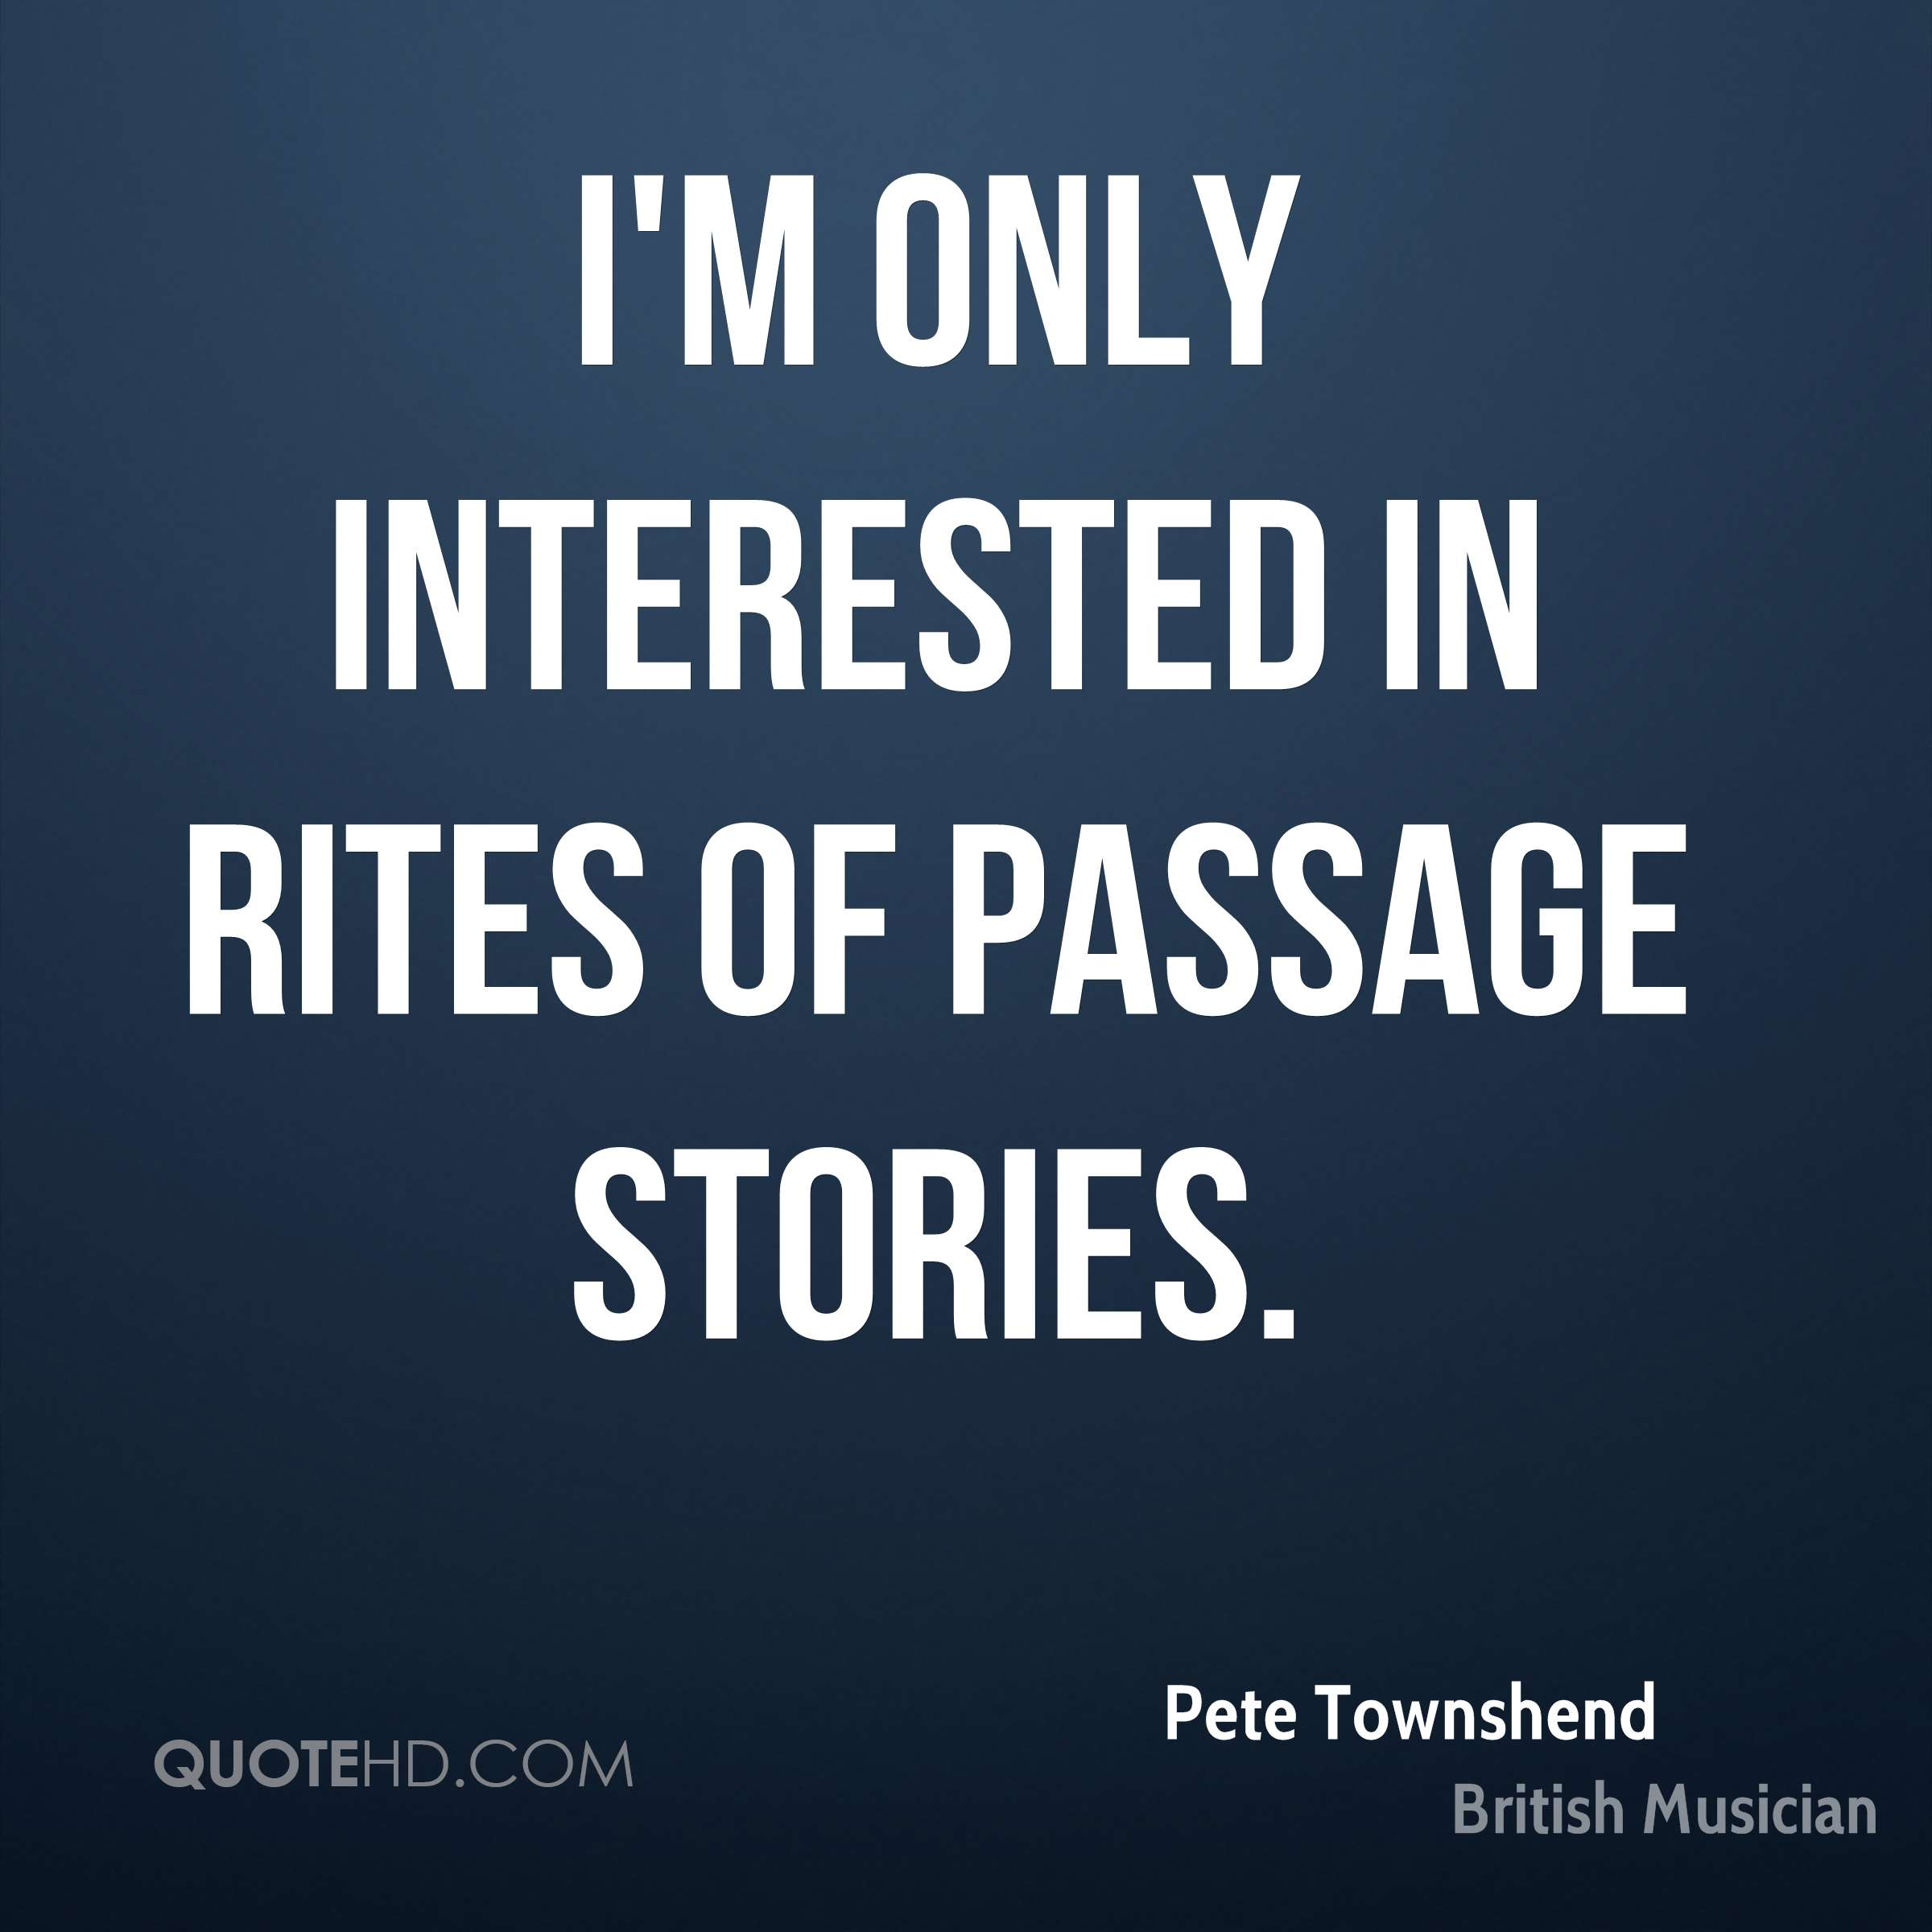 I'm only interested in rites of passage stories.